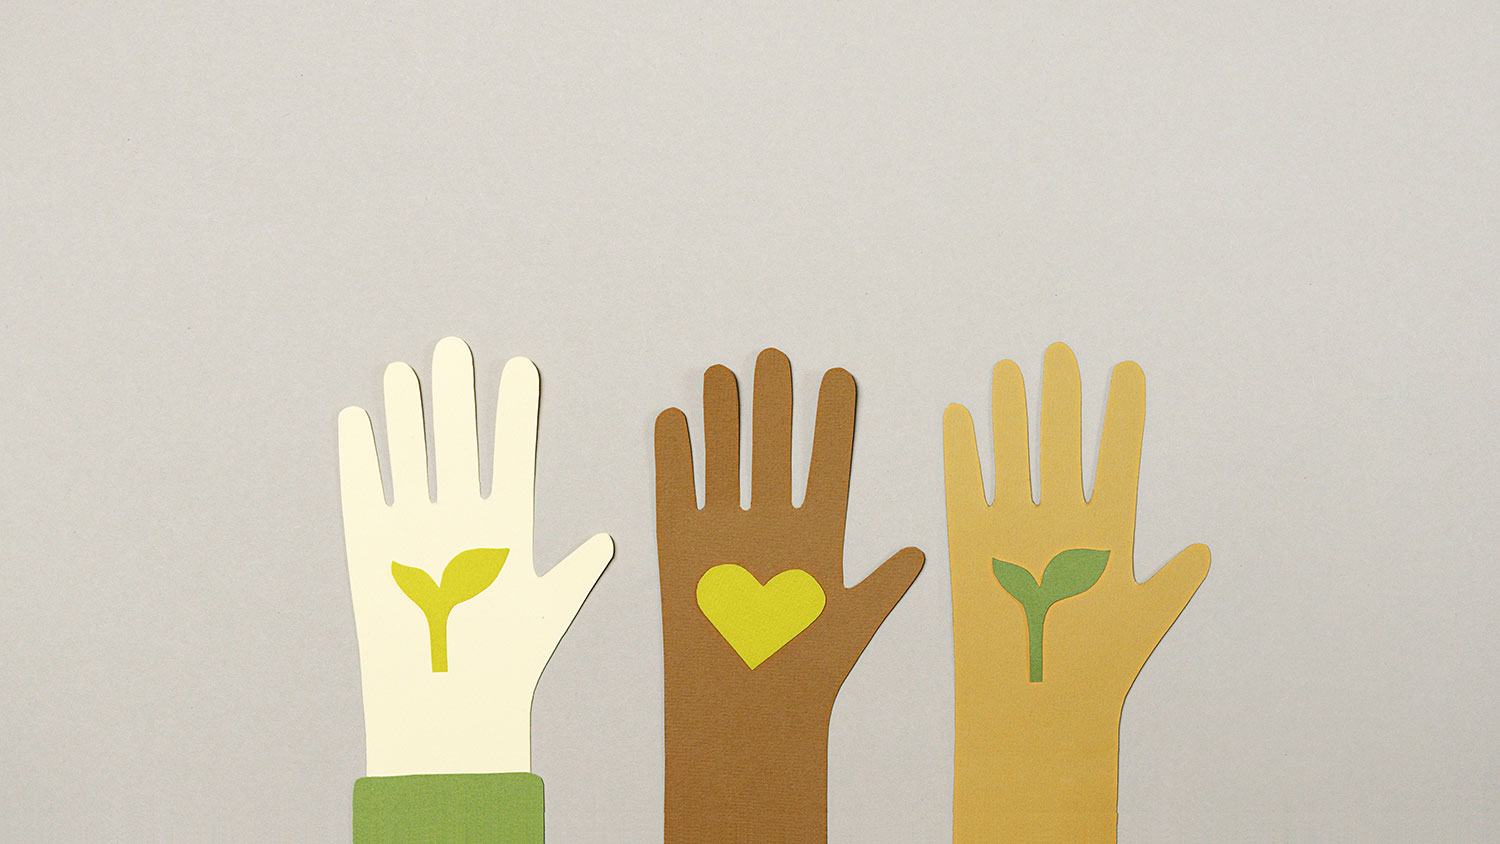 Multicultural hands with plants for Earth Day